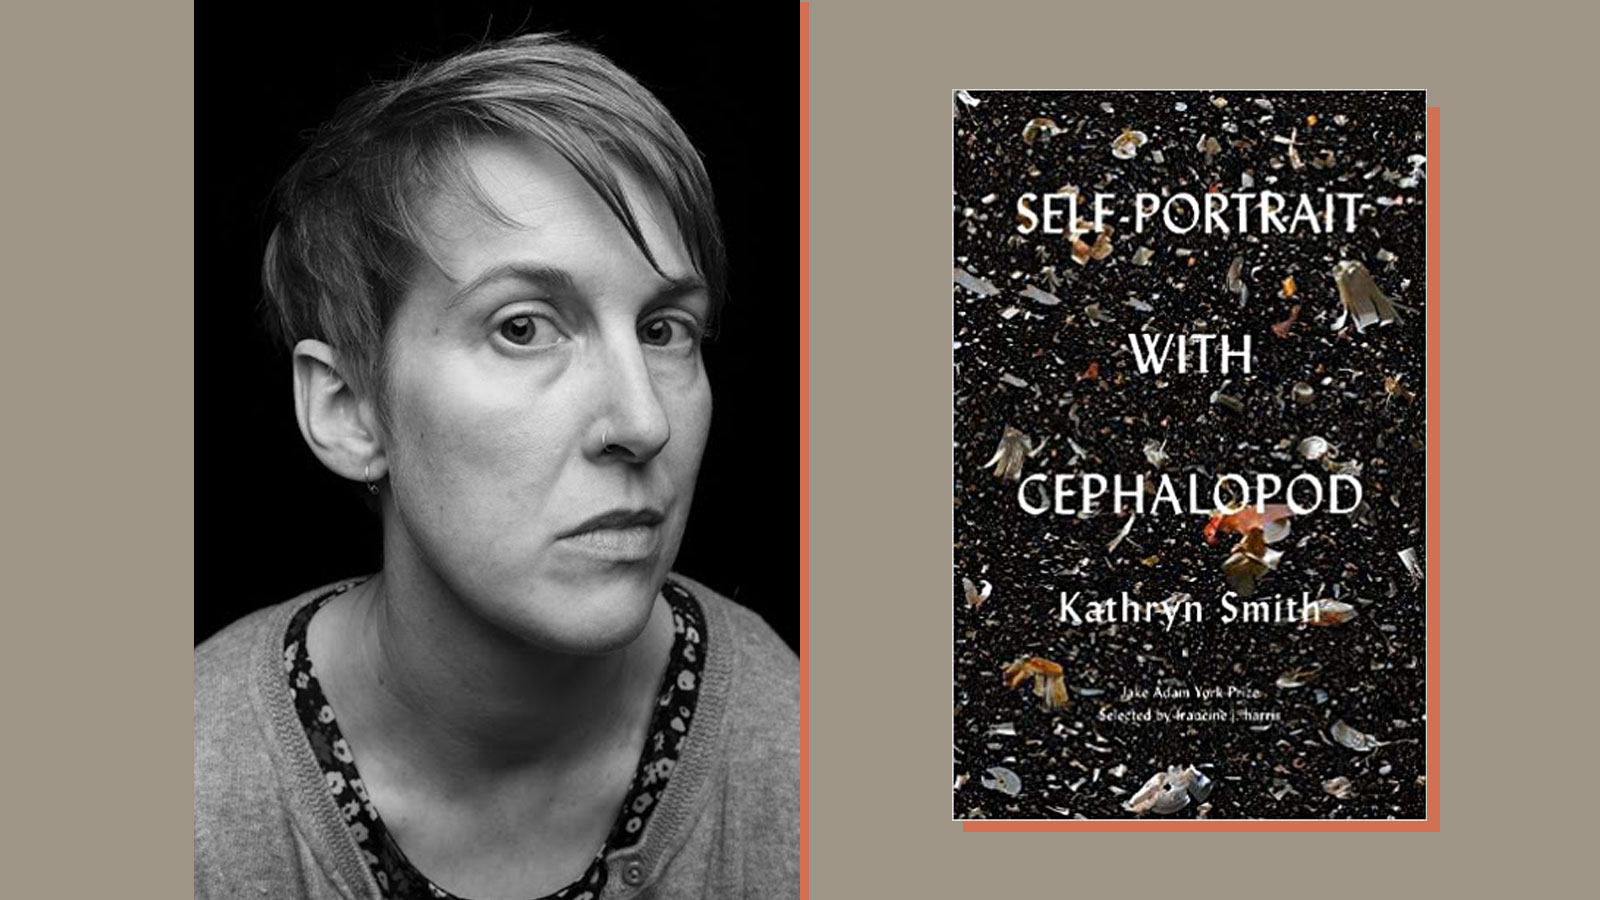 Kathryn Smith and book cover